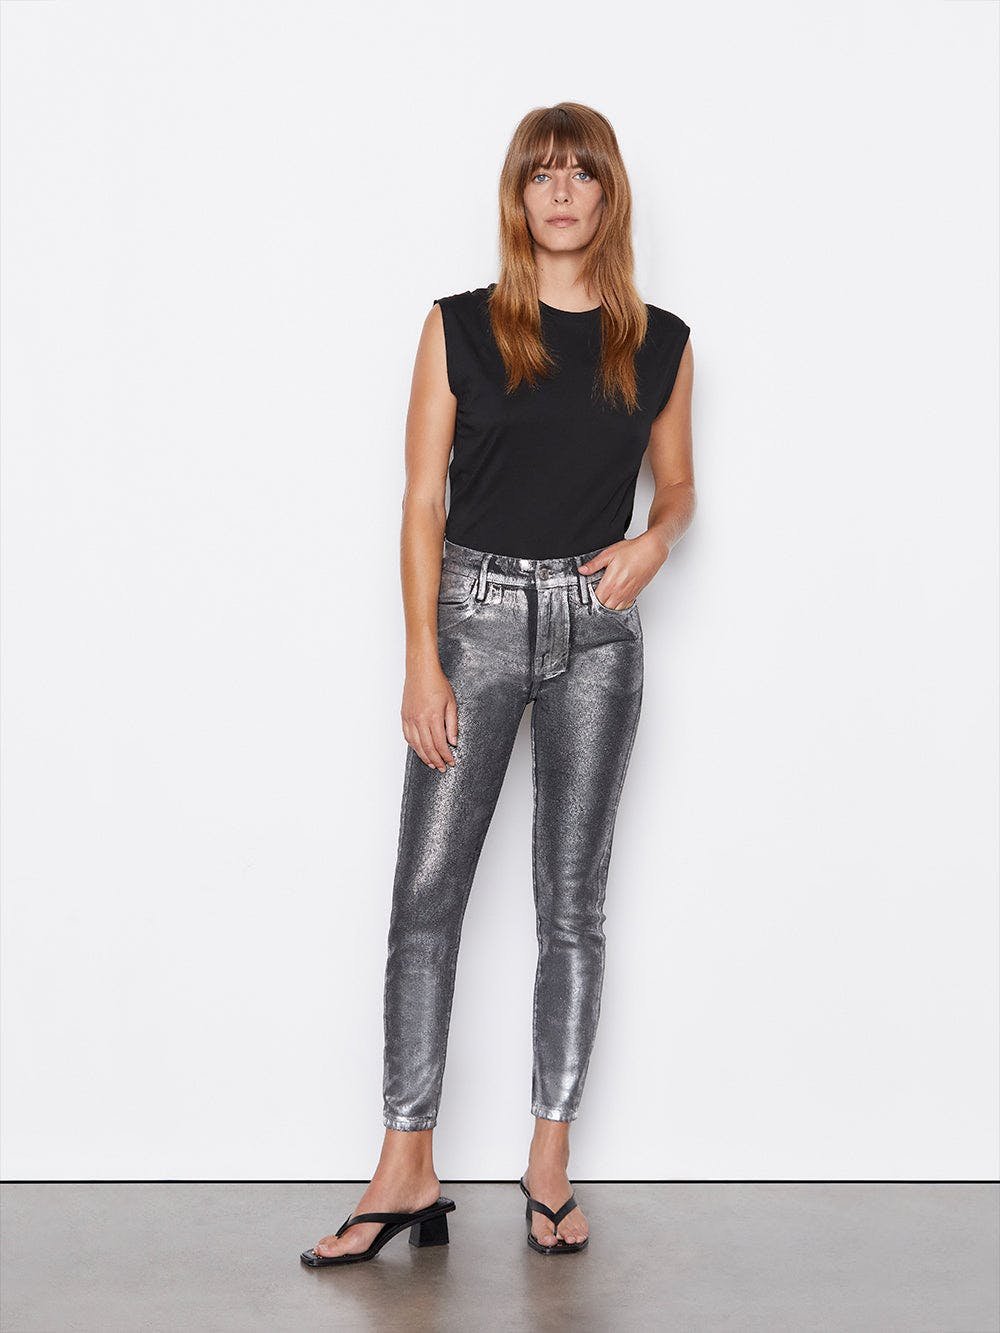 jeans full body view